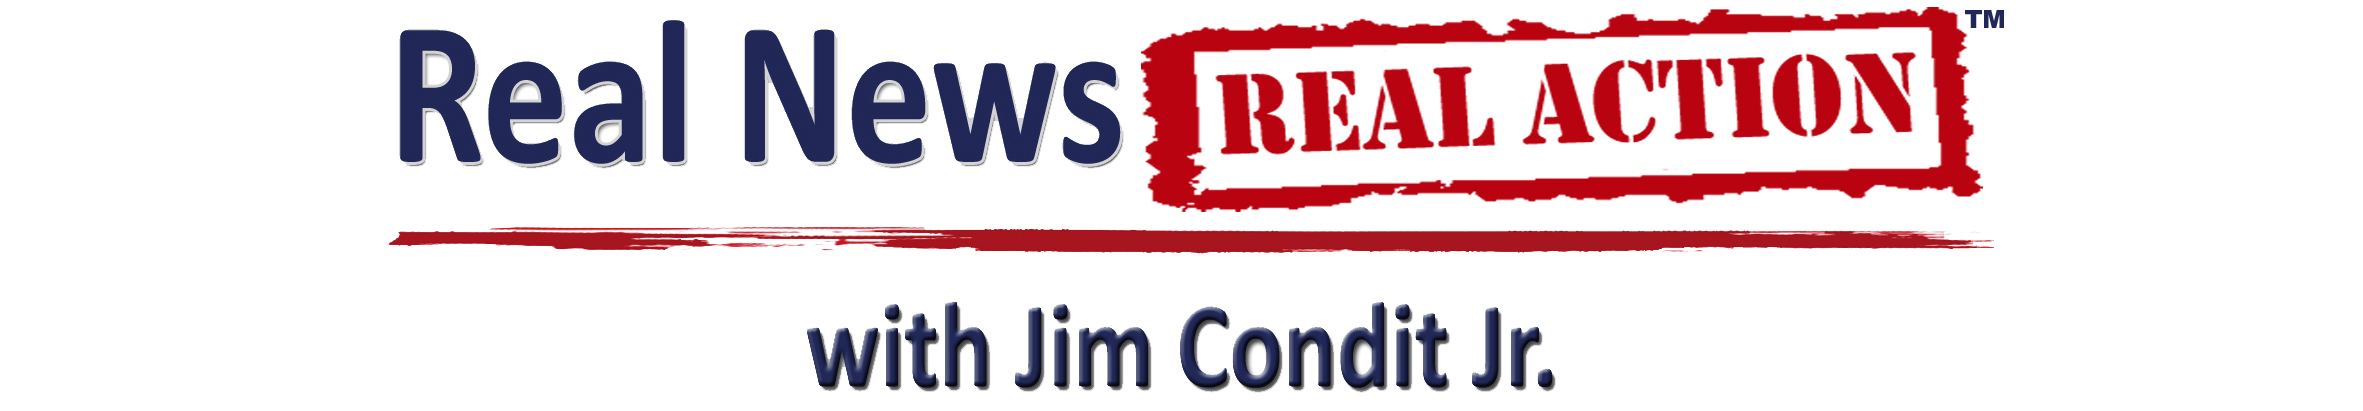 Real News Real Action with Jim Condit Jr.